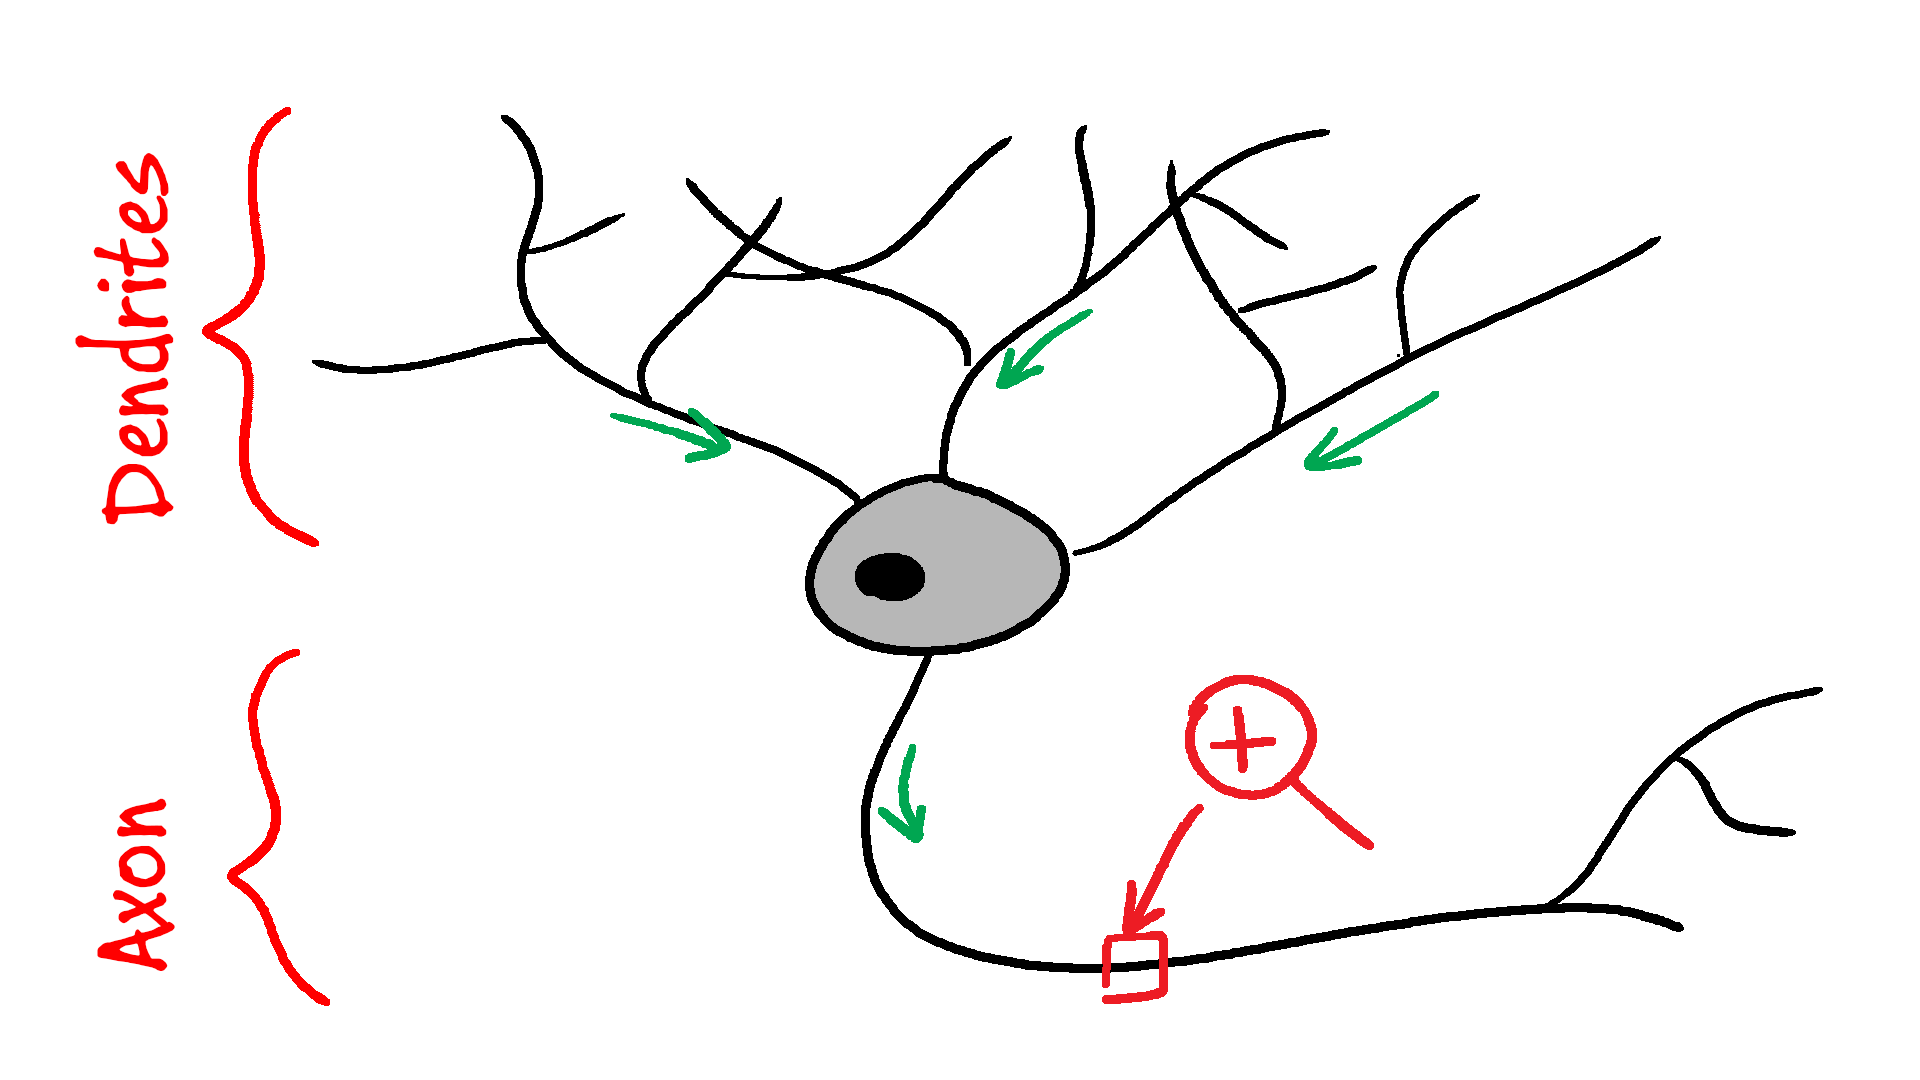 A typical neuron. Source: your brain.